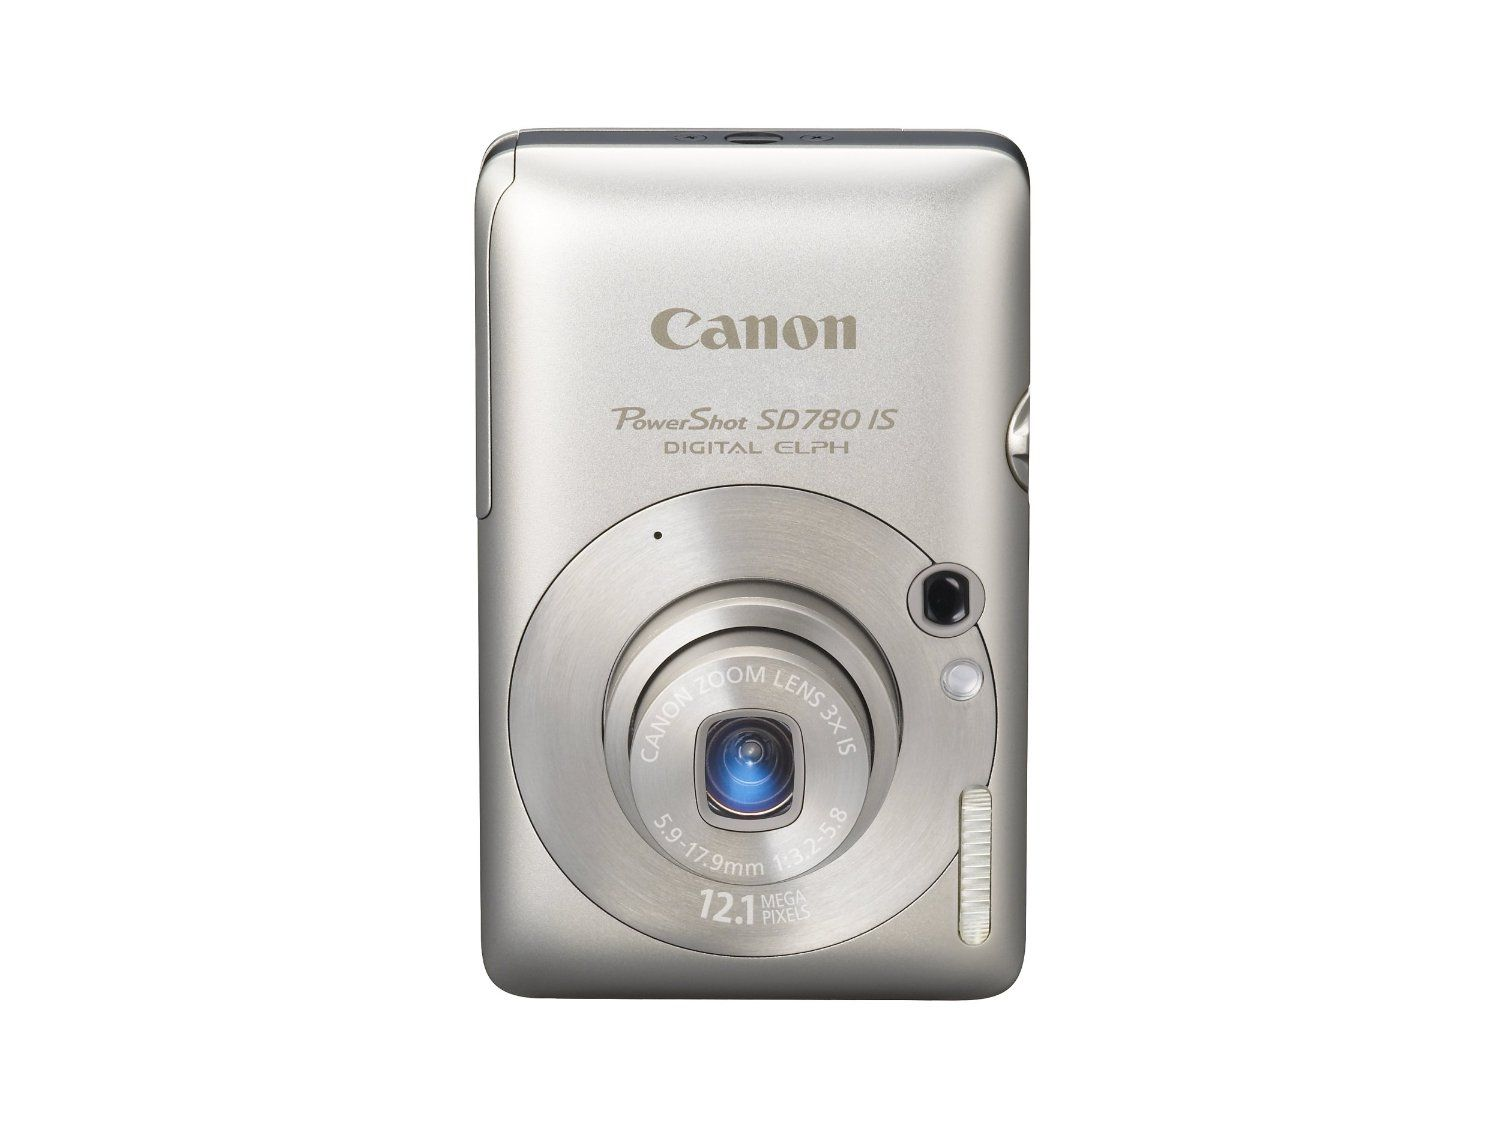 Canon Powershot Sd780is 12 1 Mp Digital Camera With 3x Optical Image Stabilized Zoom And 2 5 Inch Lcd Silver Price Powershot Digital Camera Optical Image